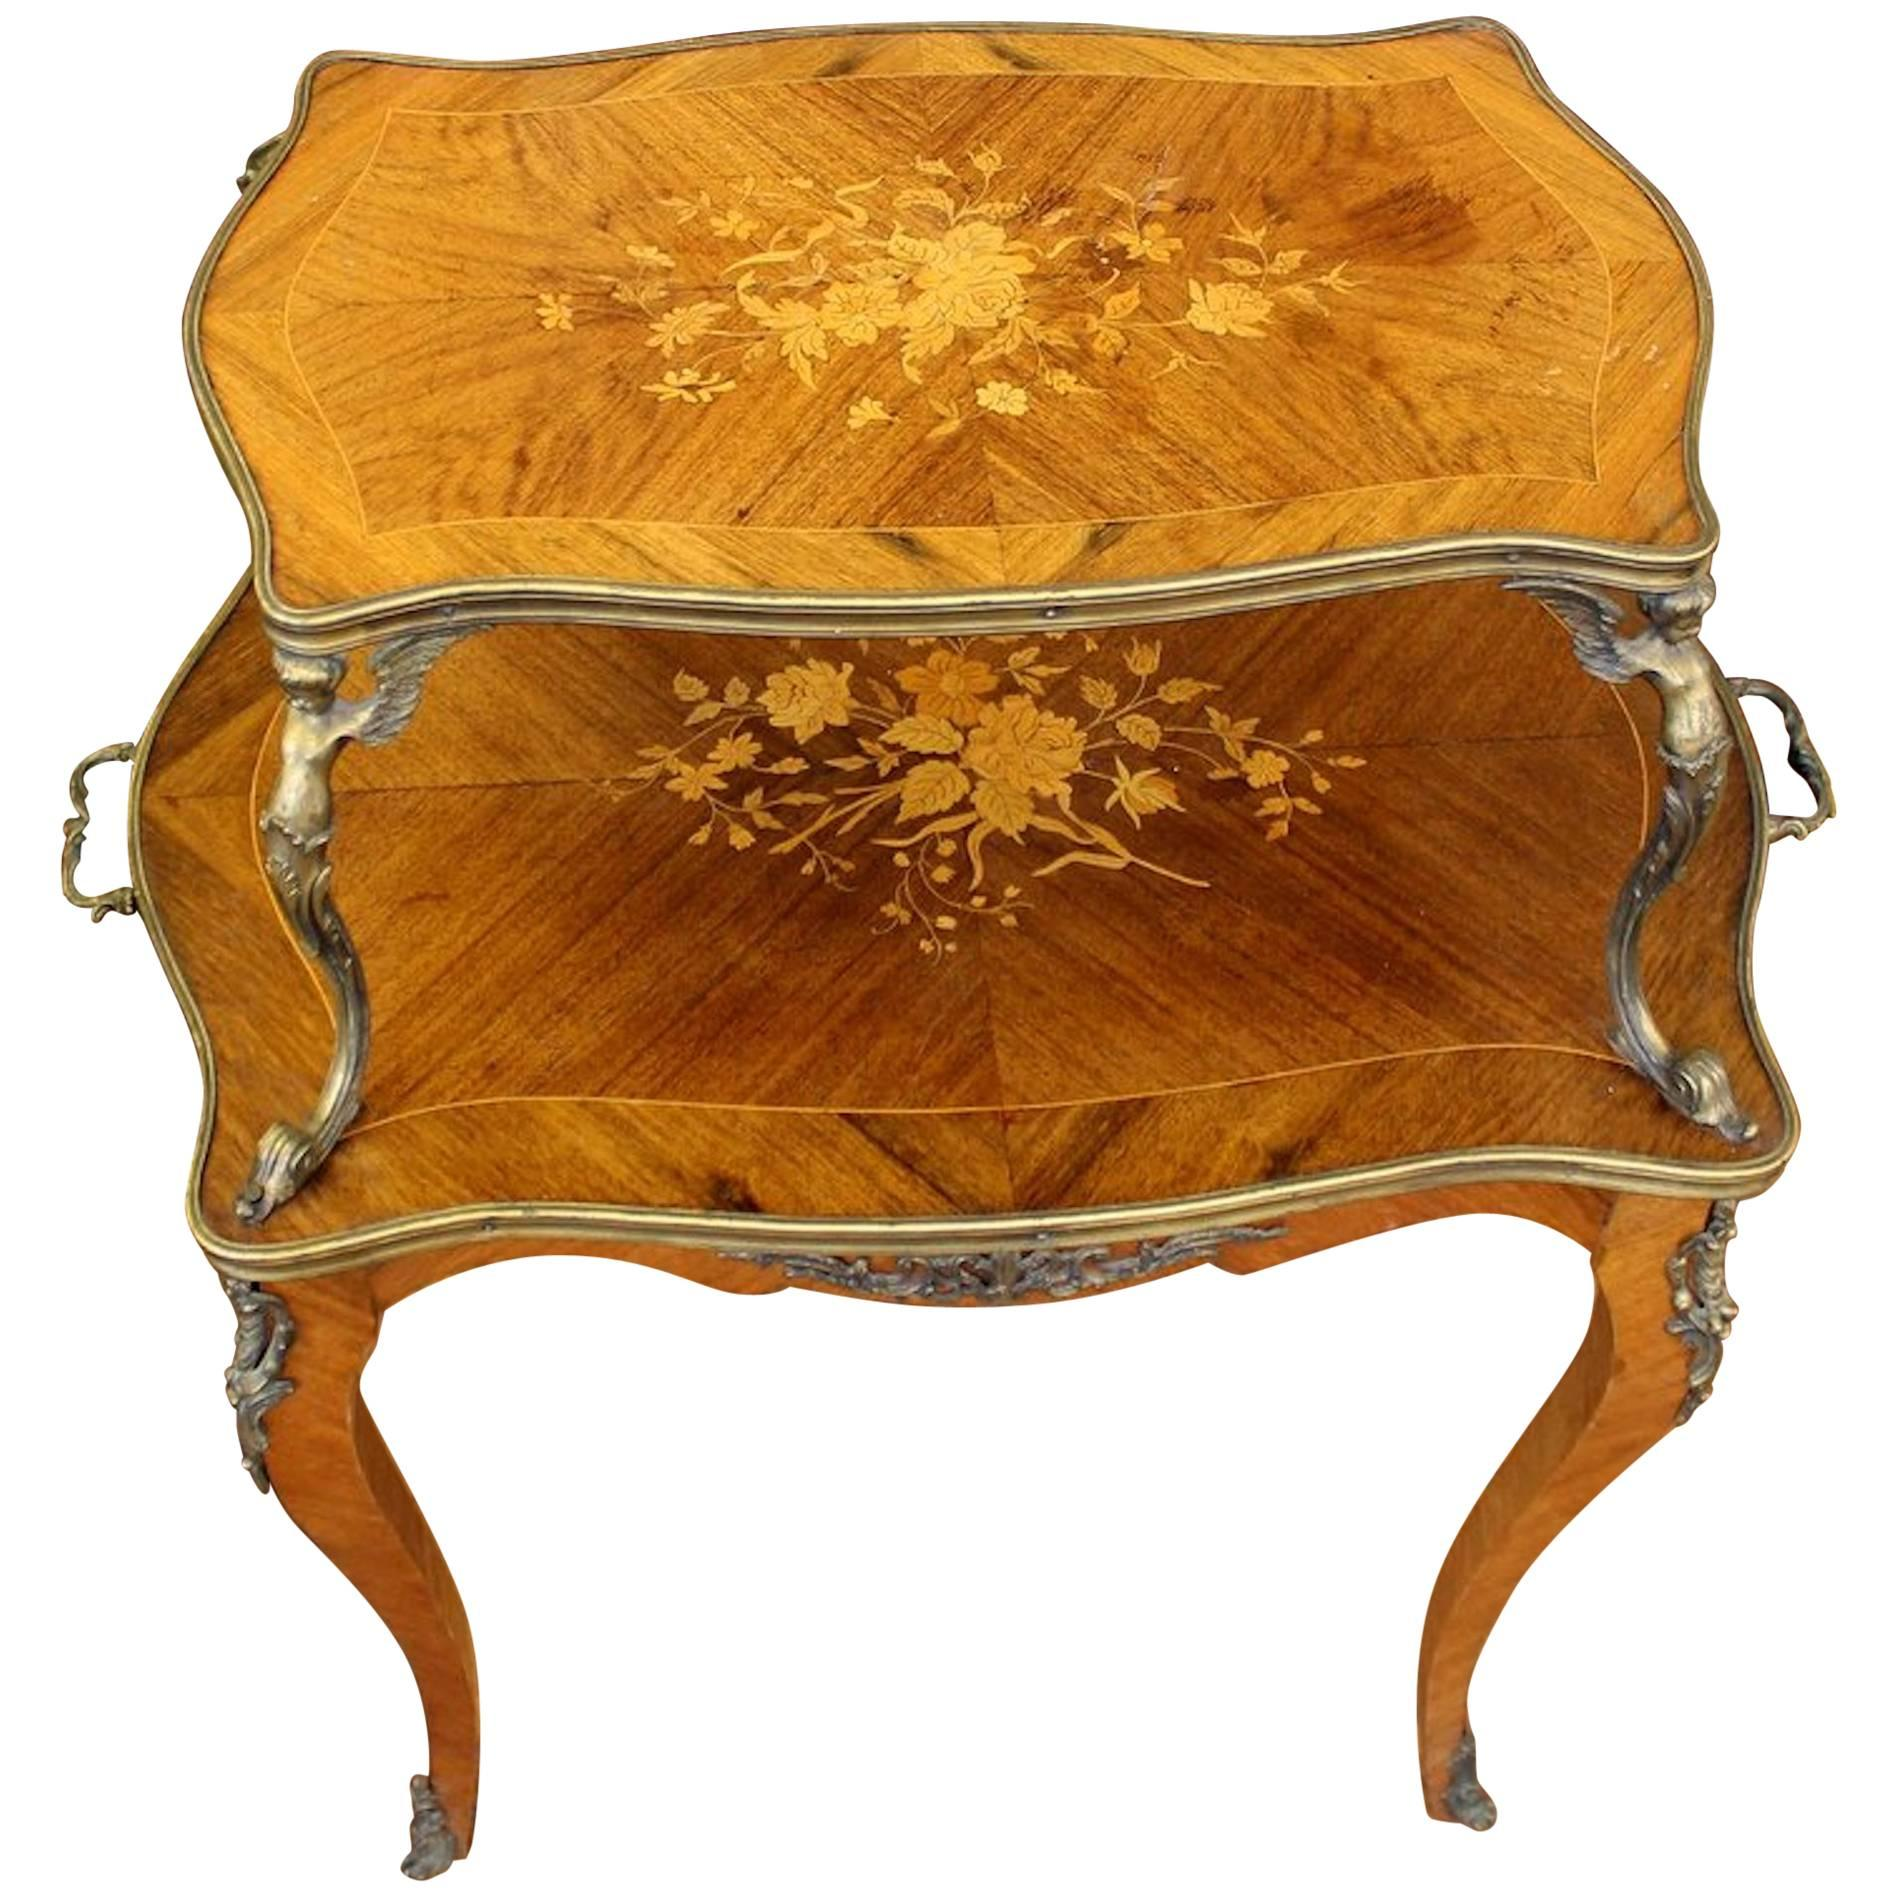 French Marquetry Inlaid Kingwood Louis XV Style Two-Tier Dessert or Tea Table